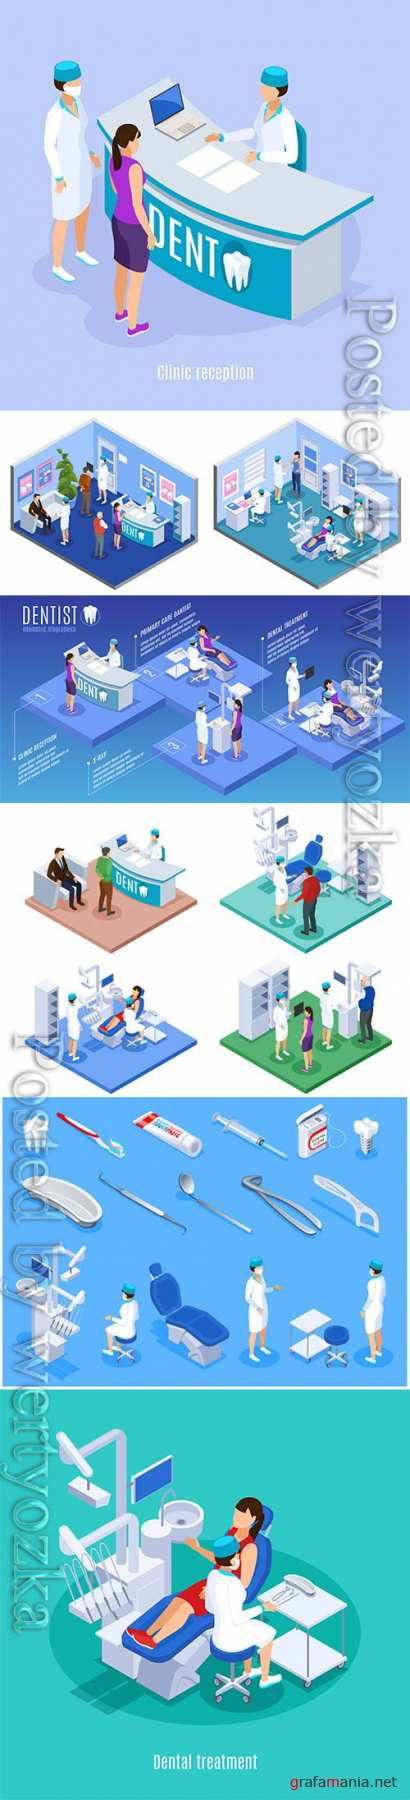 Dentist isometric icons set of stomatology equipment hygiene items implant